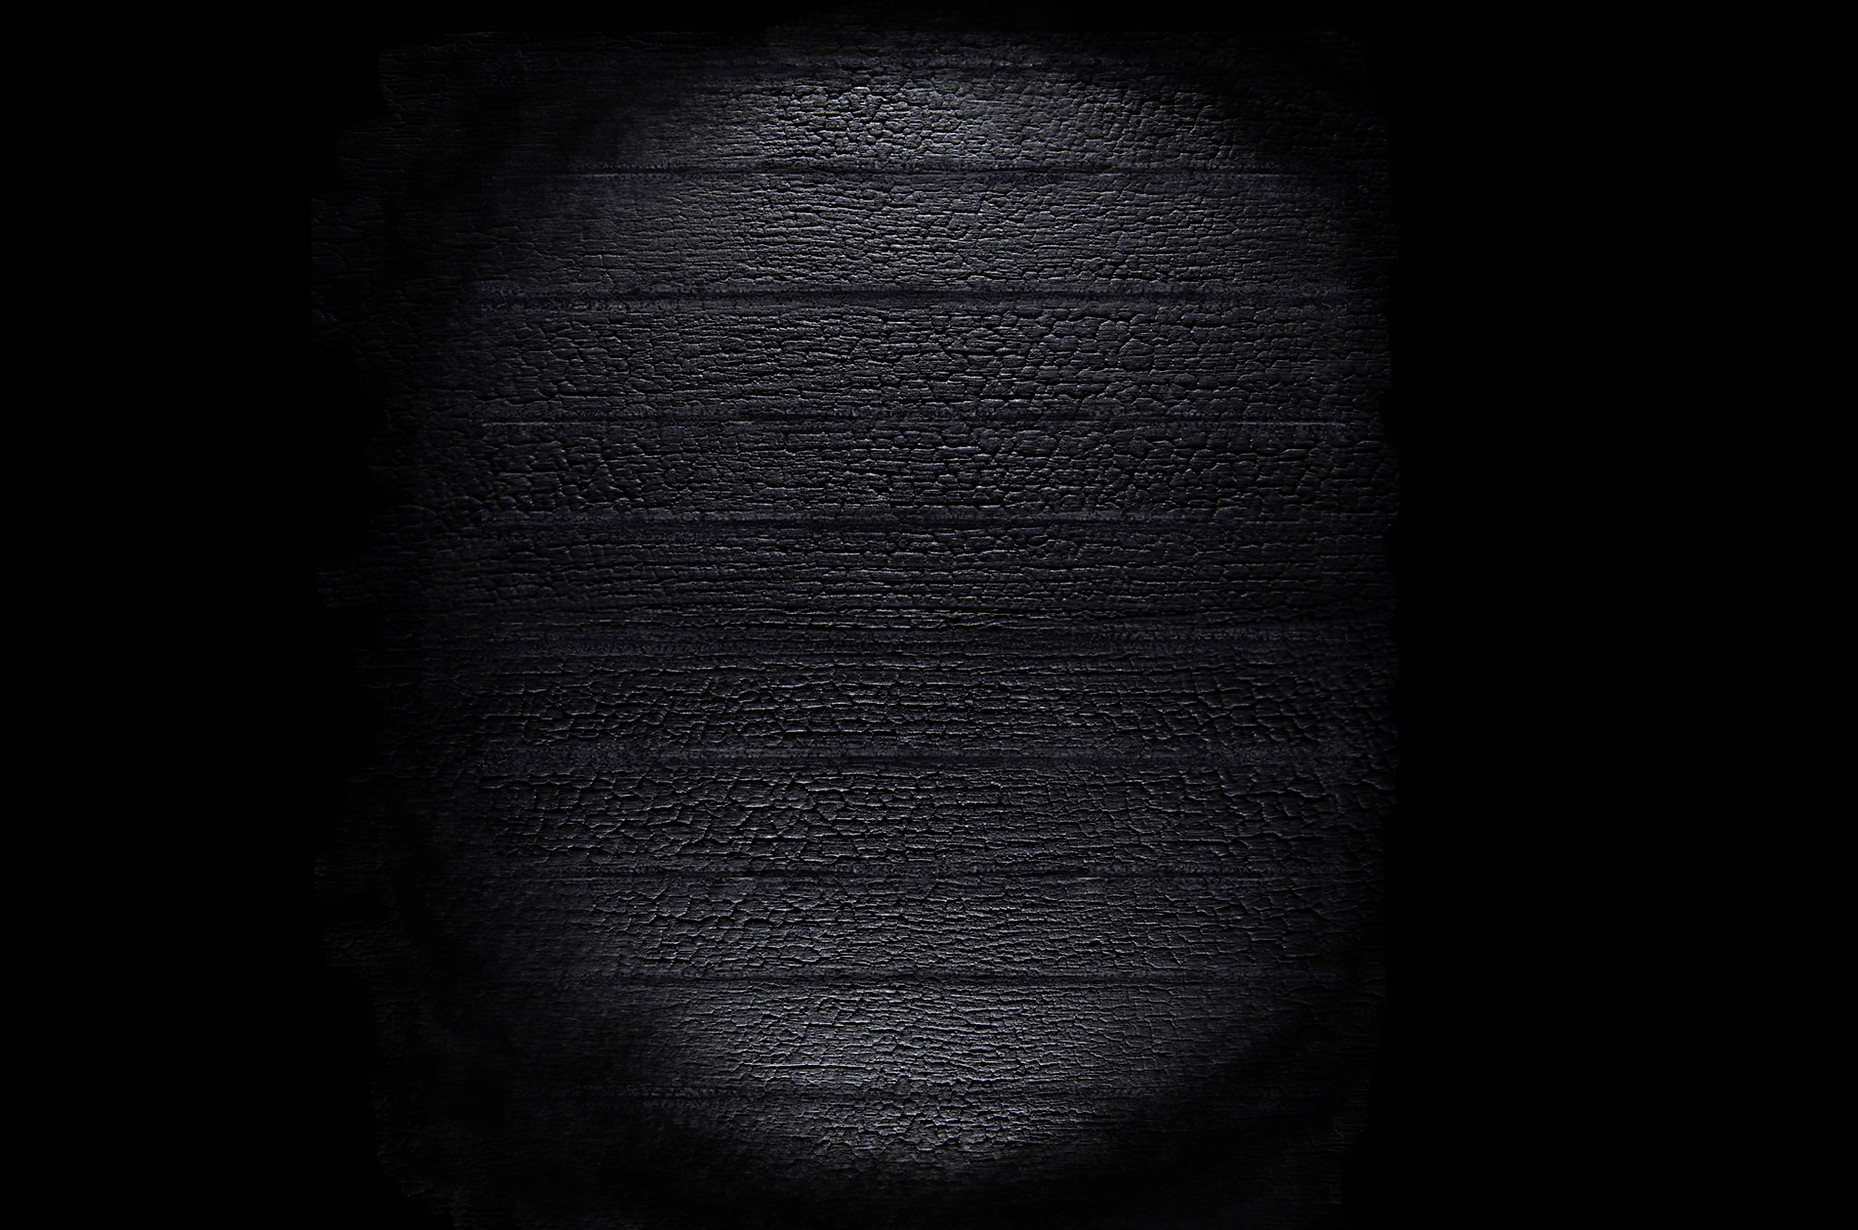 charred background2.jpg